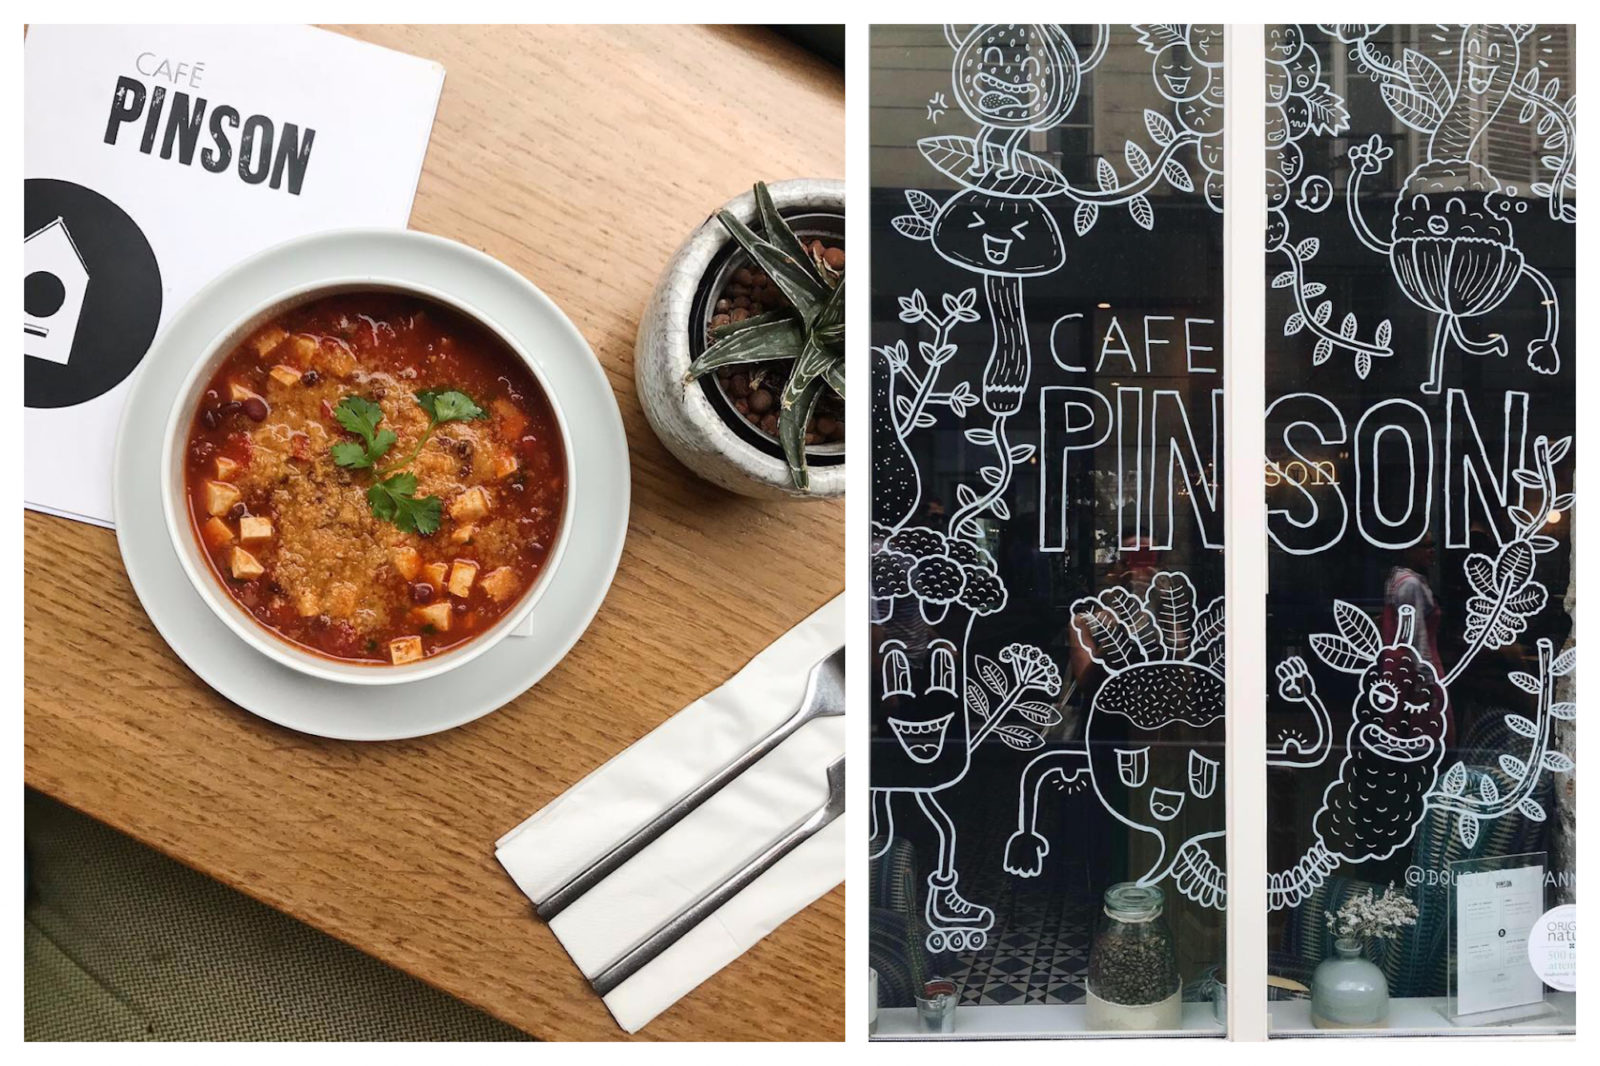 One of the best places to go for a gluten-free lunch in Paris is Café Pinson in the Marais, and we love their vegetable soups (left) and fun décor like the hand-painted veggie figures on the window (right).